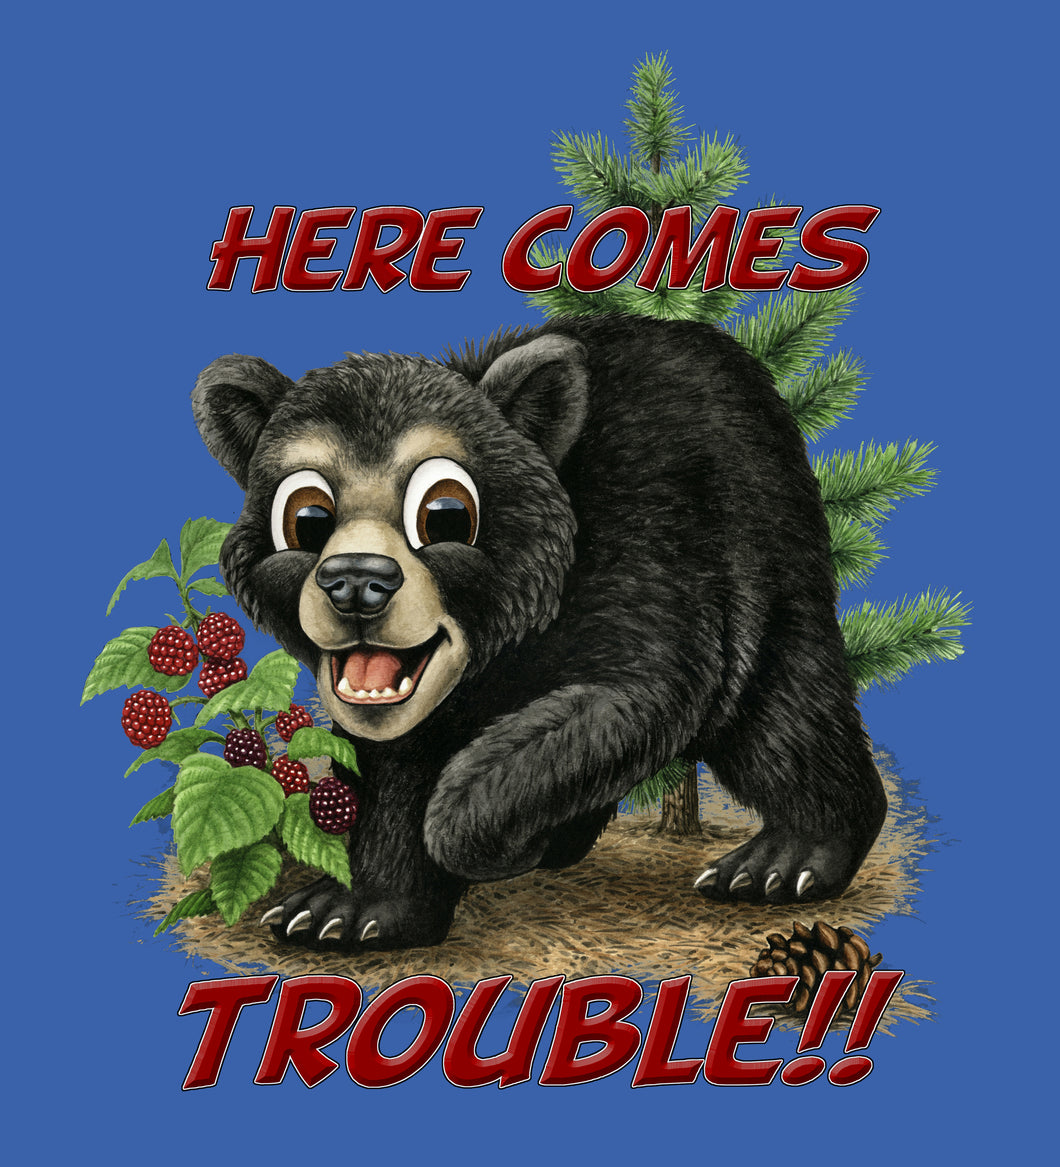 Bear Trouble - painting of a comical bear smiling